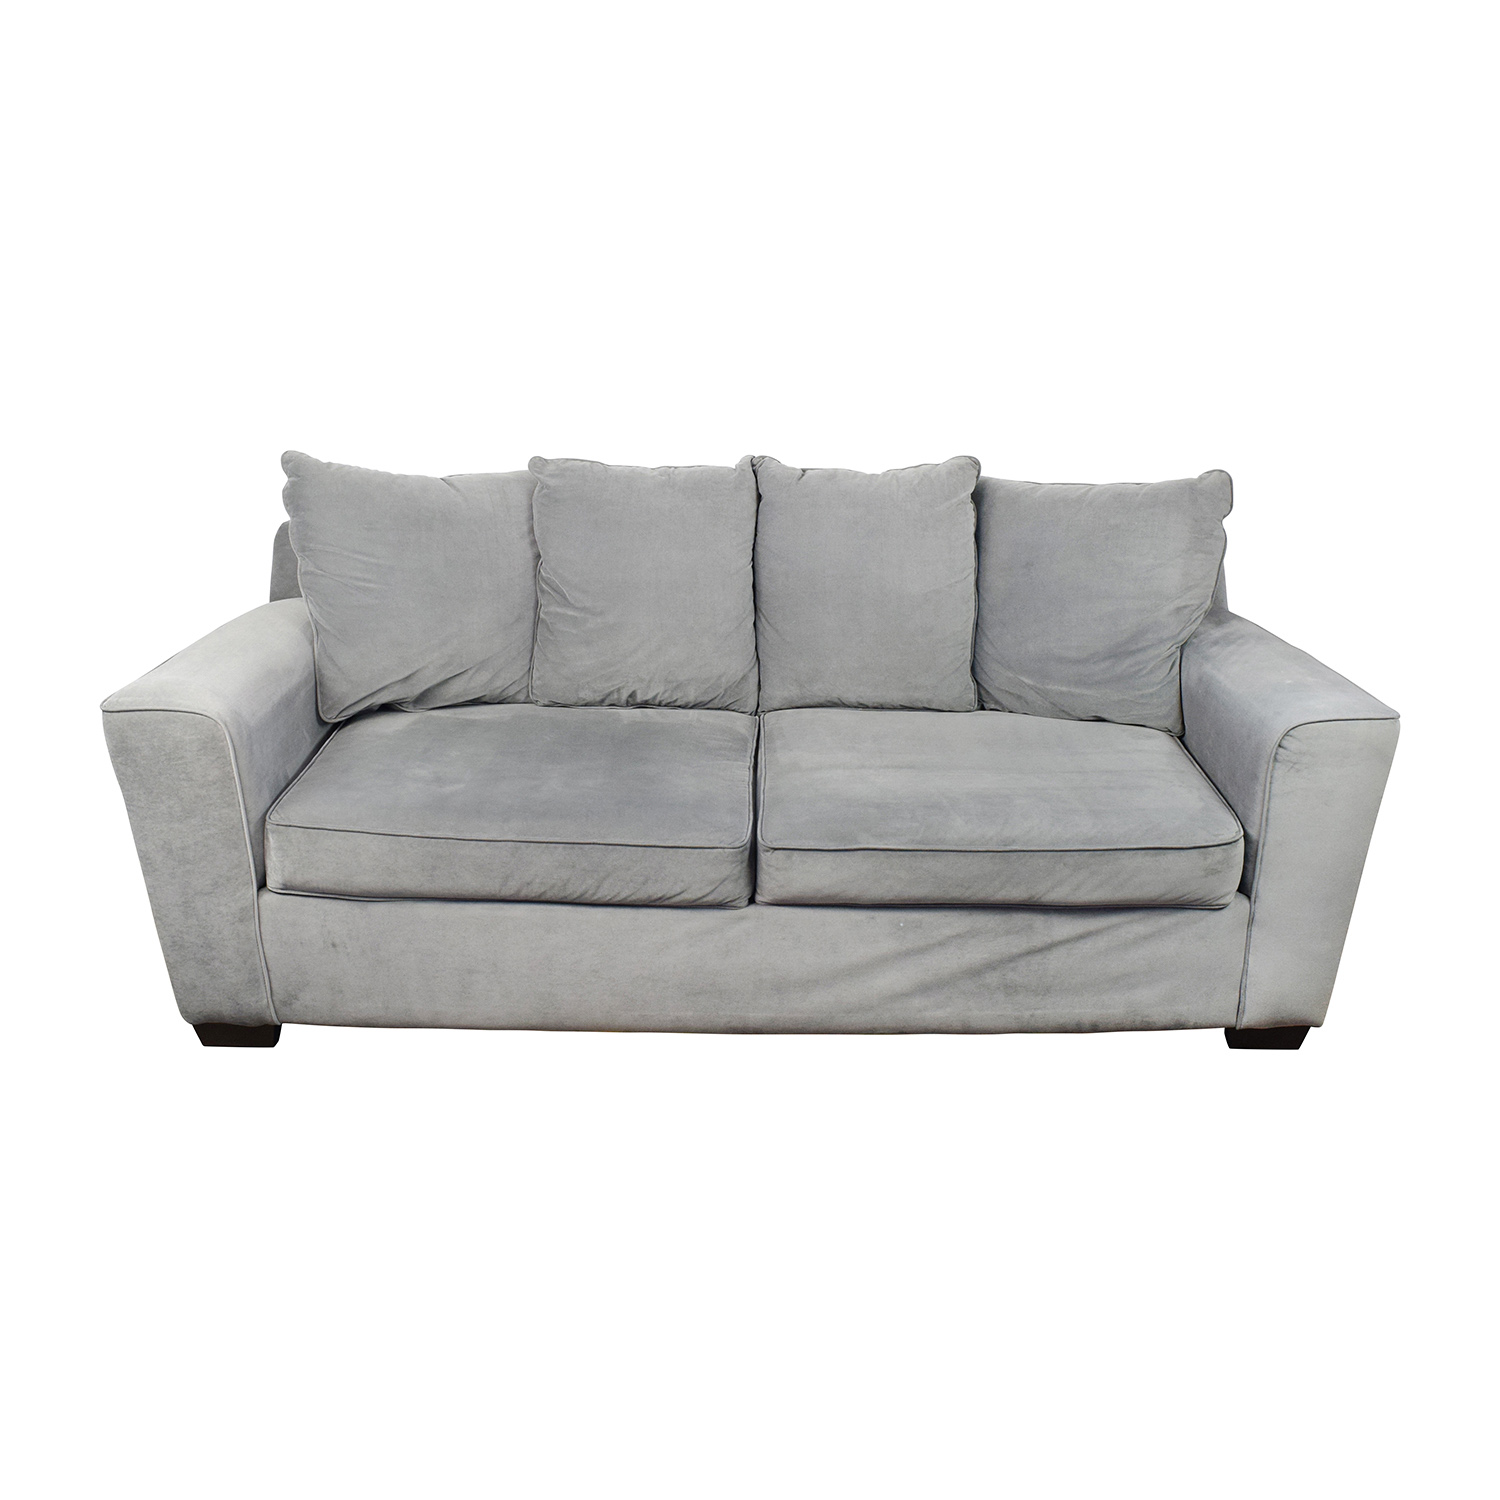 71 off jennifer convertibles jennifer convertibles gray for Sectional sofa jennifer convertible